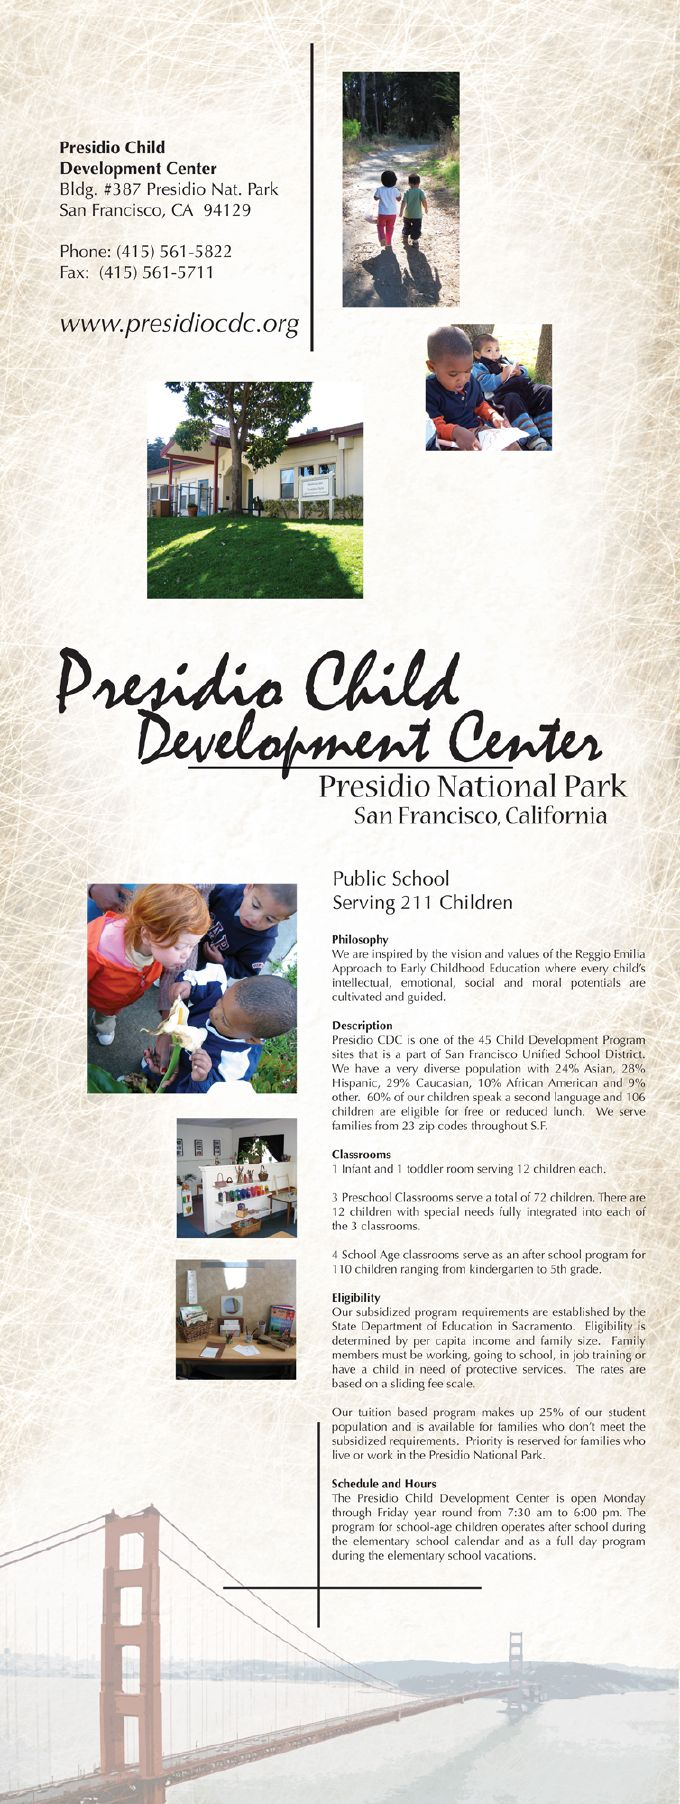 Presidio Child Development Center